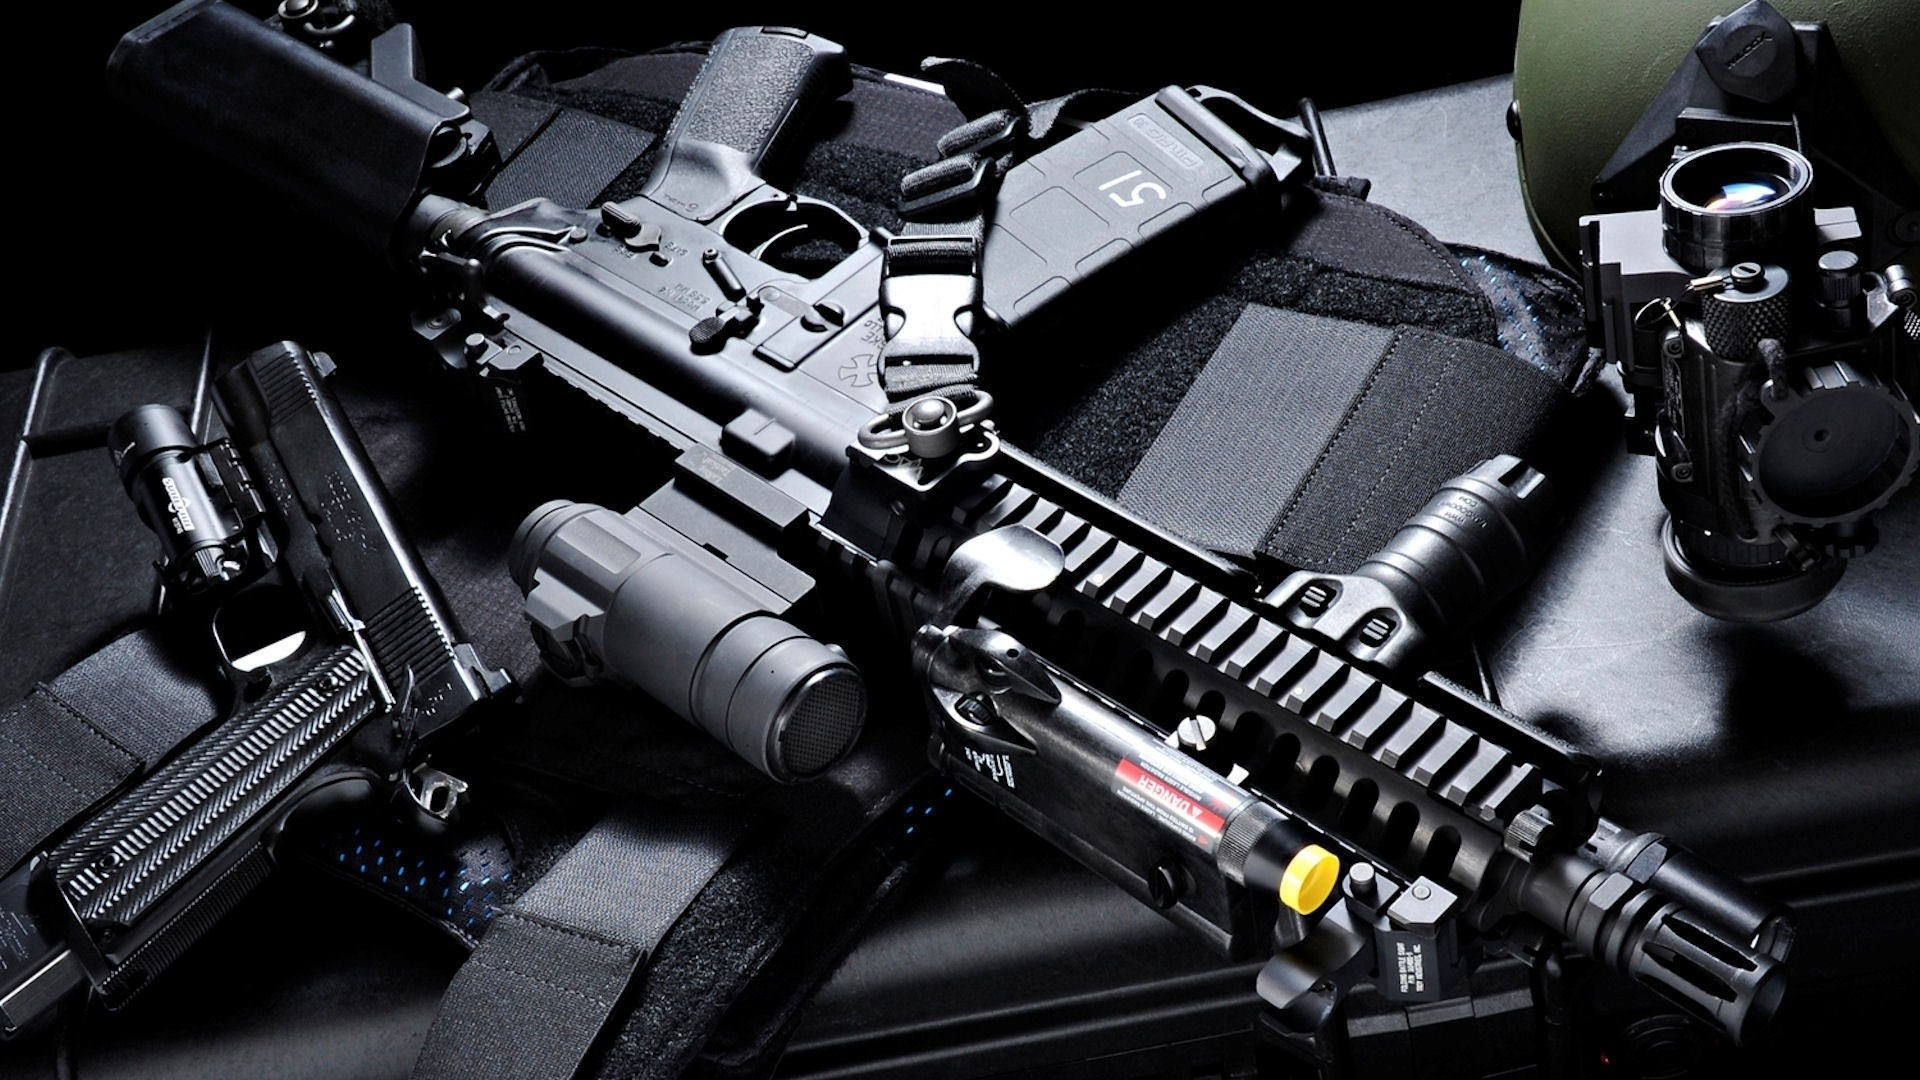 1920x1080 Scope guns wall weapons m1911 ar15 45acp attachments 556mm nato body armors  foregrip telescoping sto Wallpaper